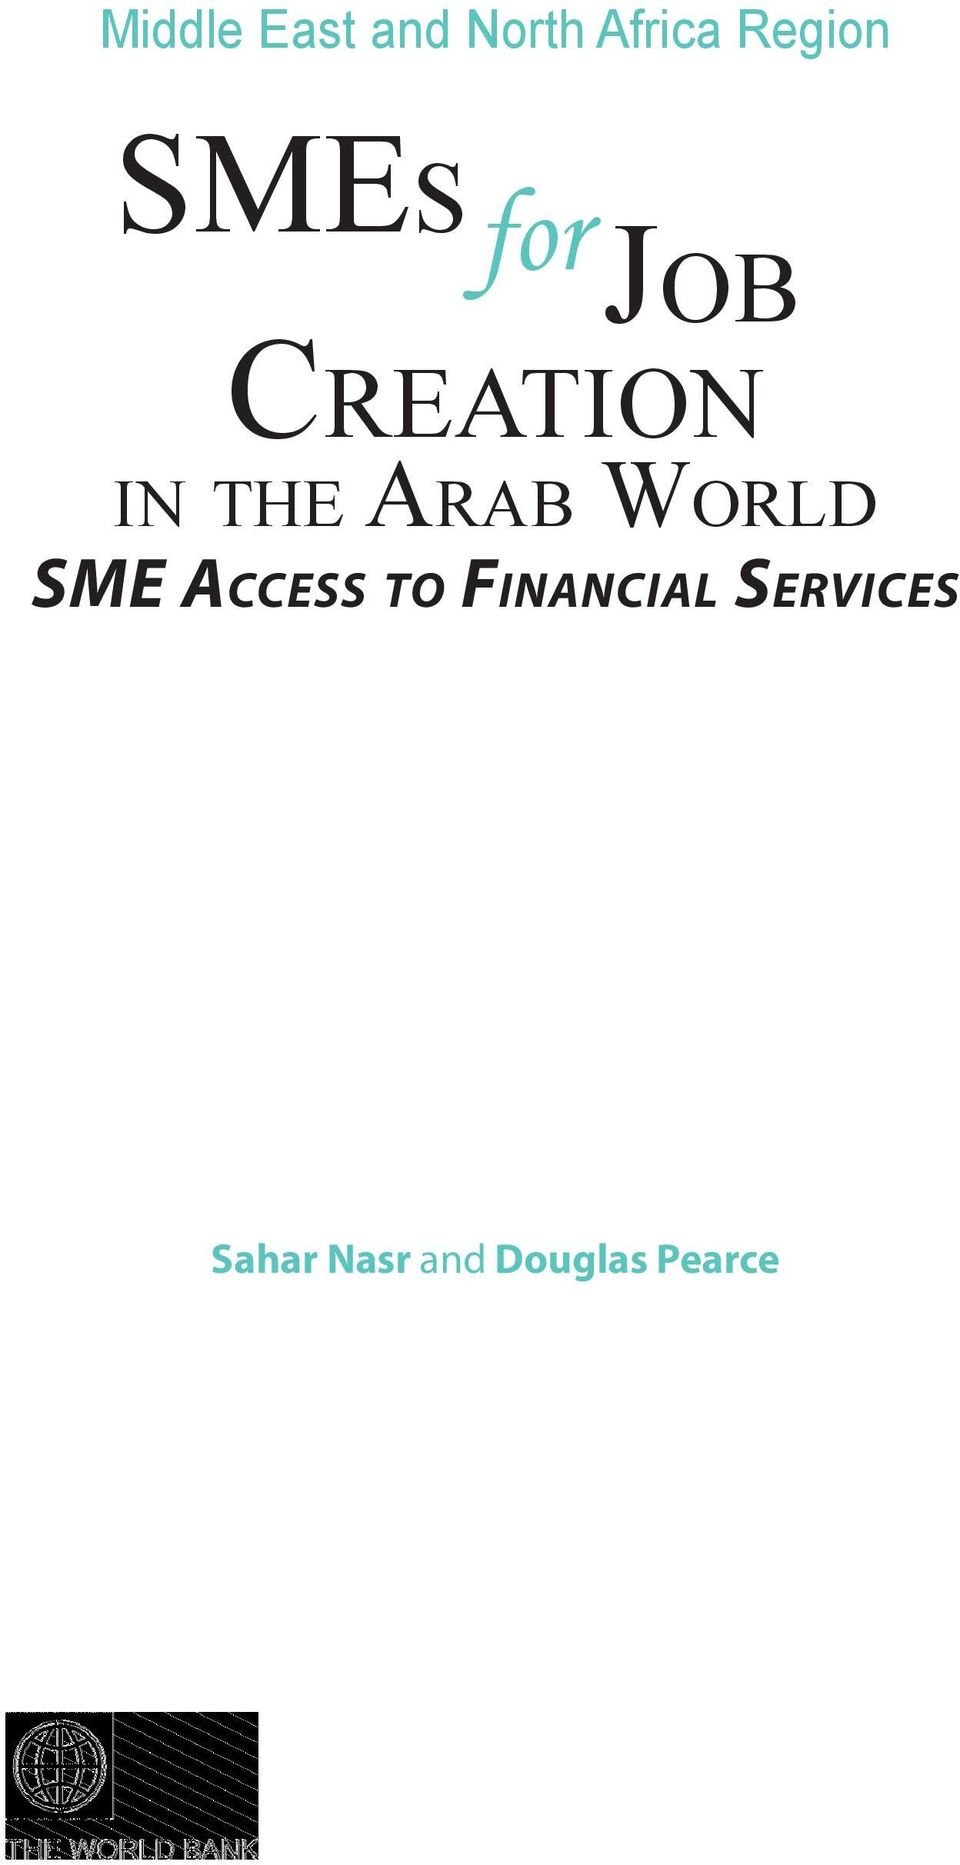 in the Arab World SME Access to